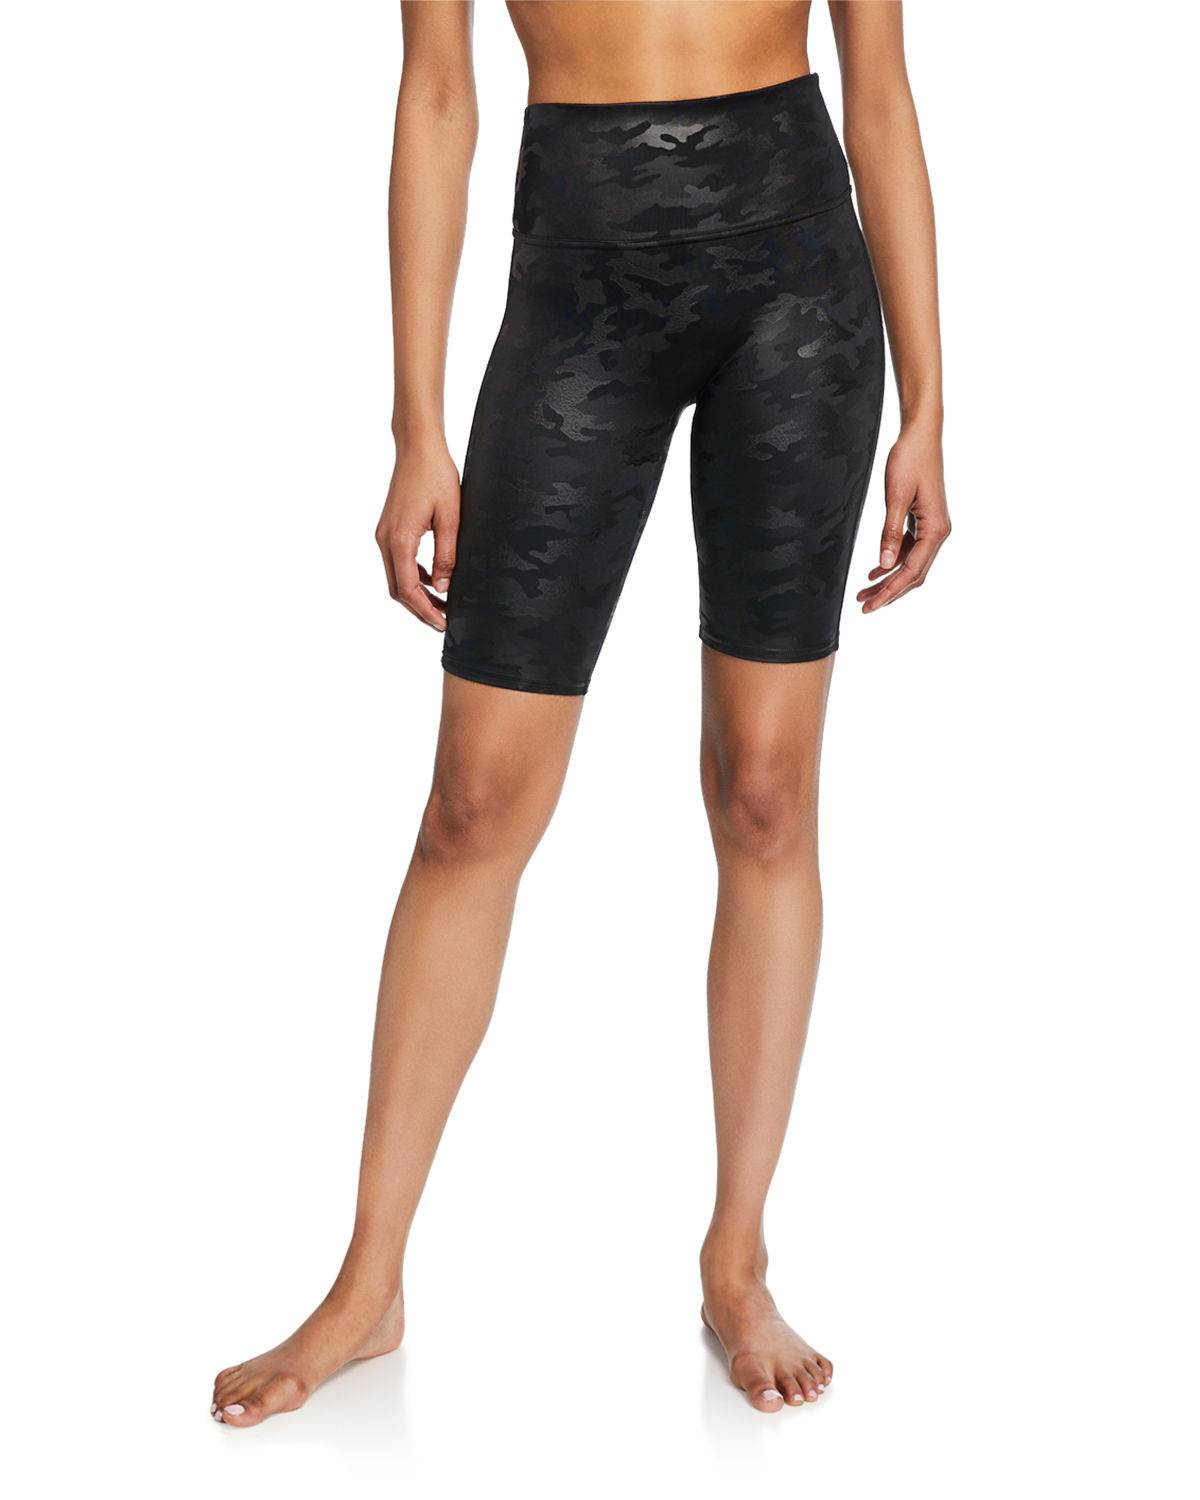 Spanx Faux-Leather Camo Bike Shorts - Size: Small